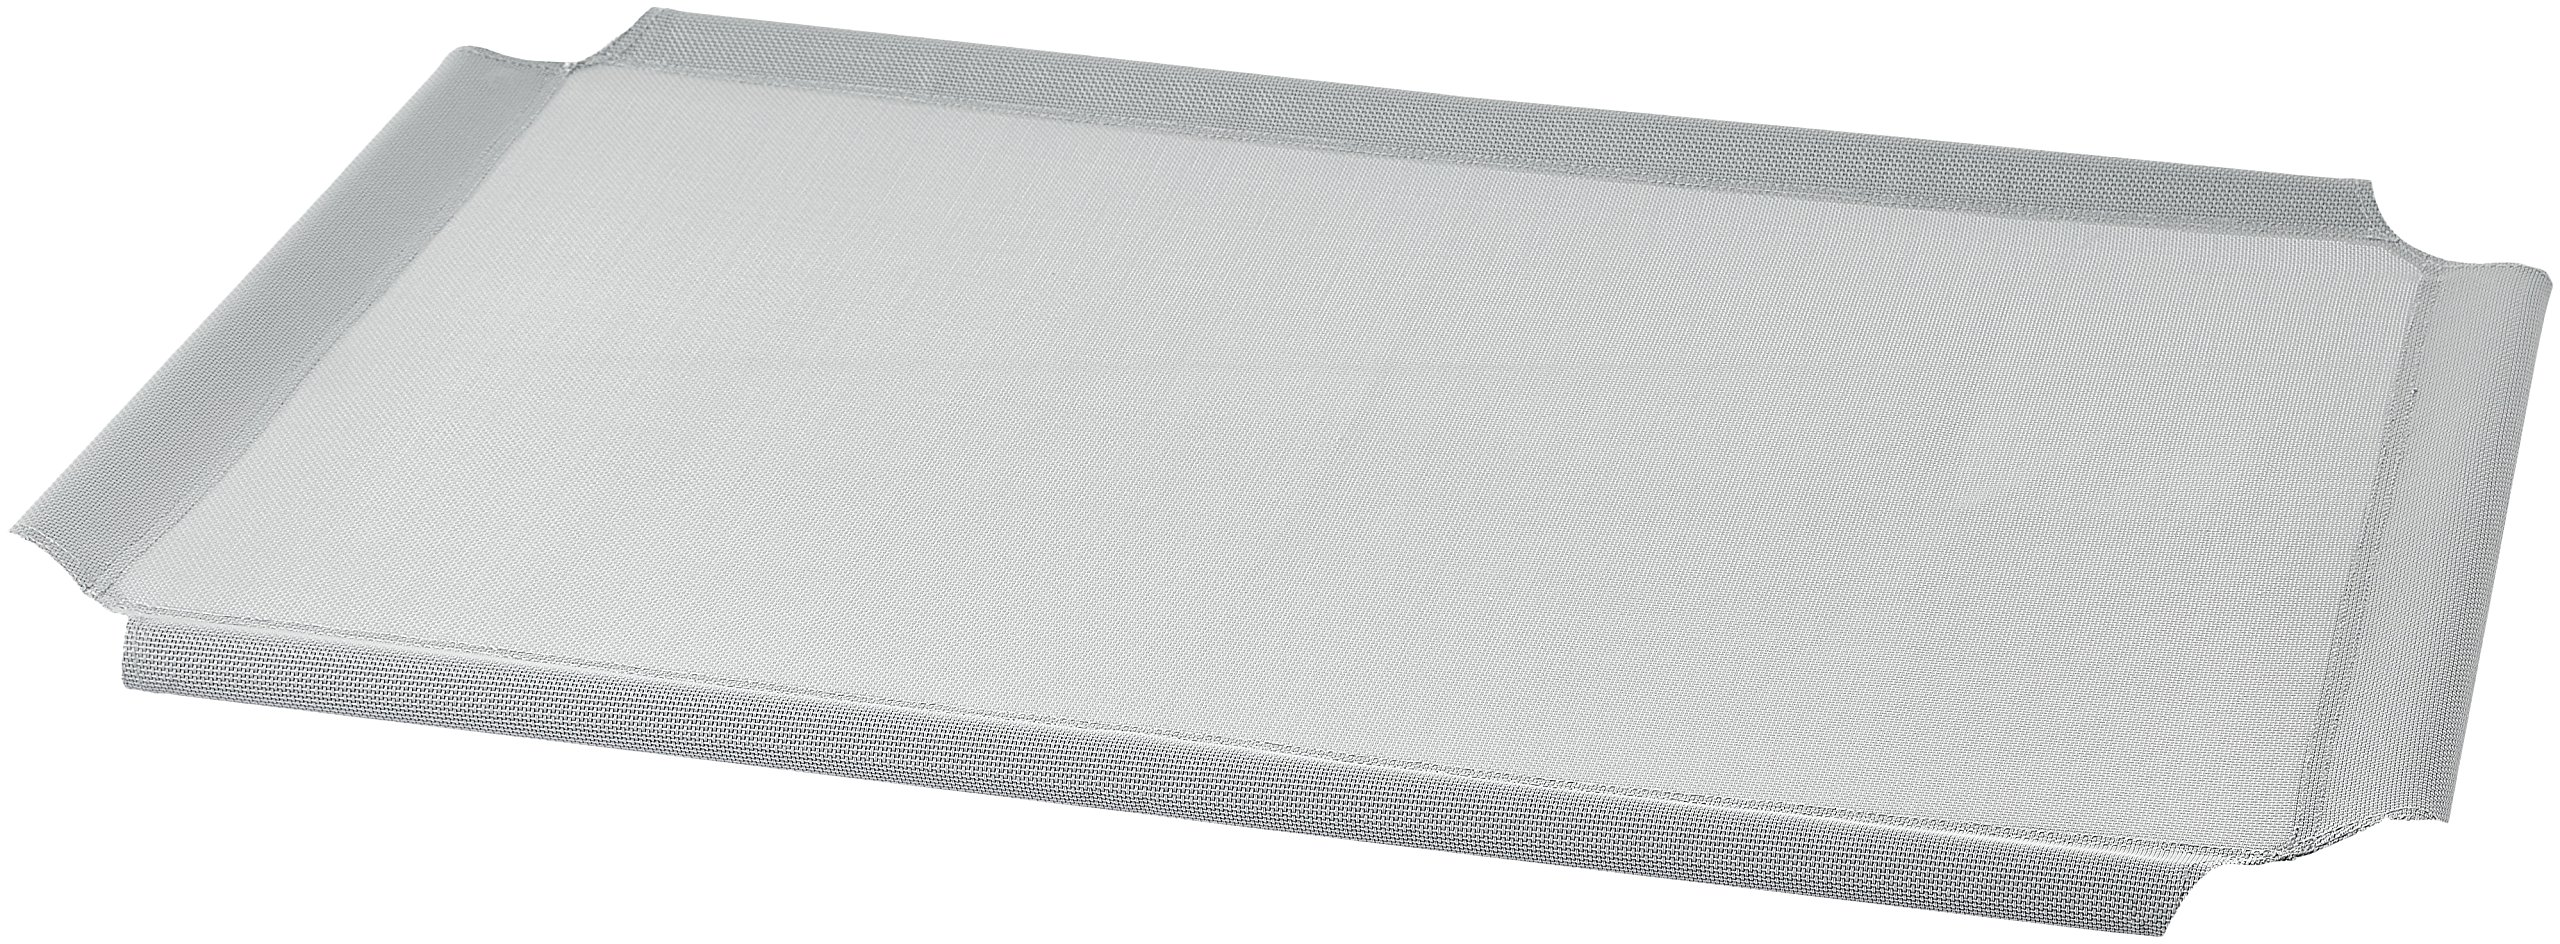 AmazonBasics Elevated Cooling Pet Bed Replacement Cover, M, Grey